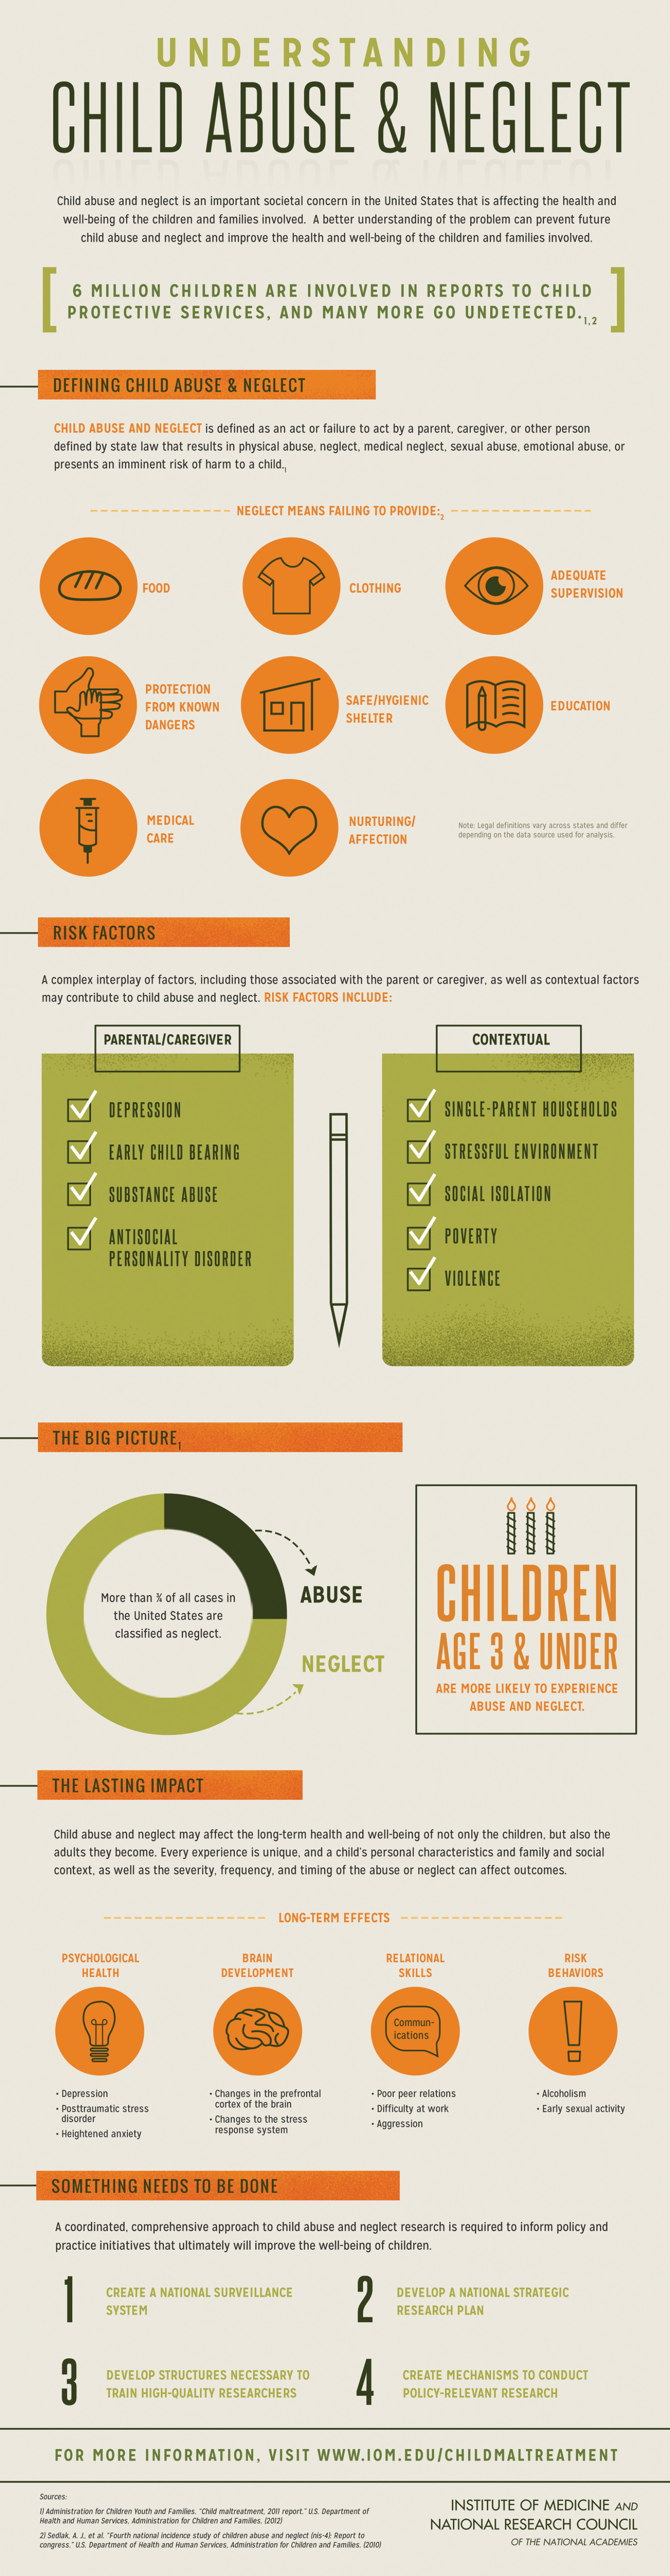 Understanding Child Abuse & Neglect Infographic